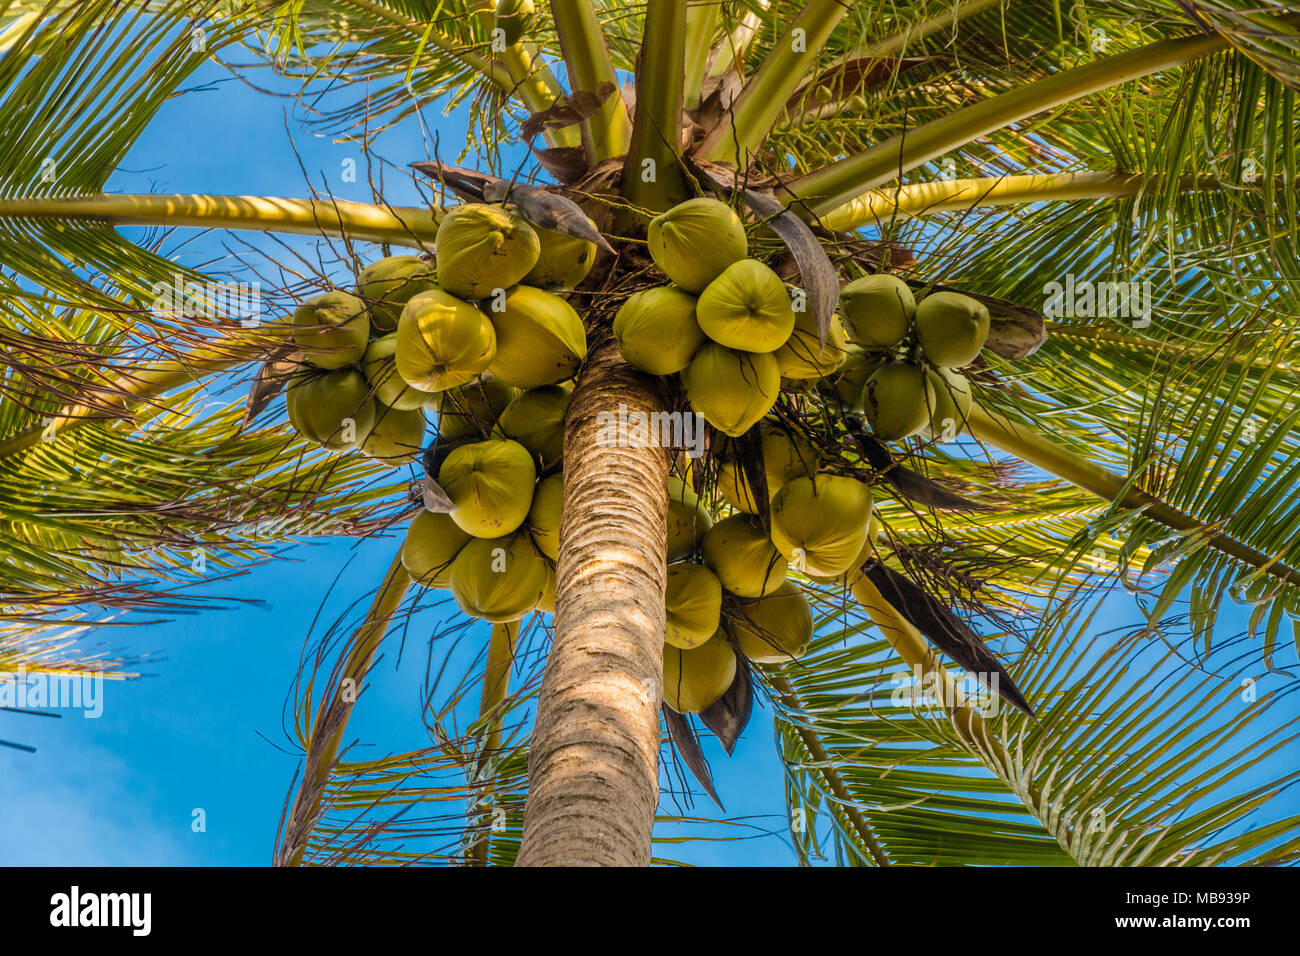 Below a palm tree with lots of fresh hanging coconuts. Taken in Terengganu, Malaysia. Stock Photo